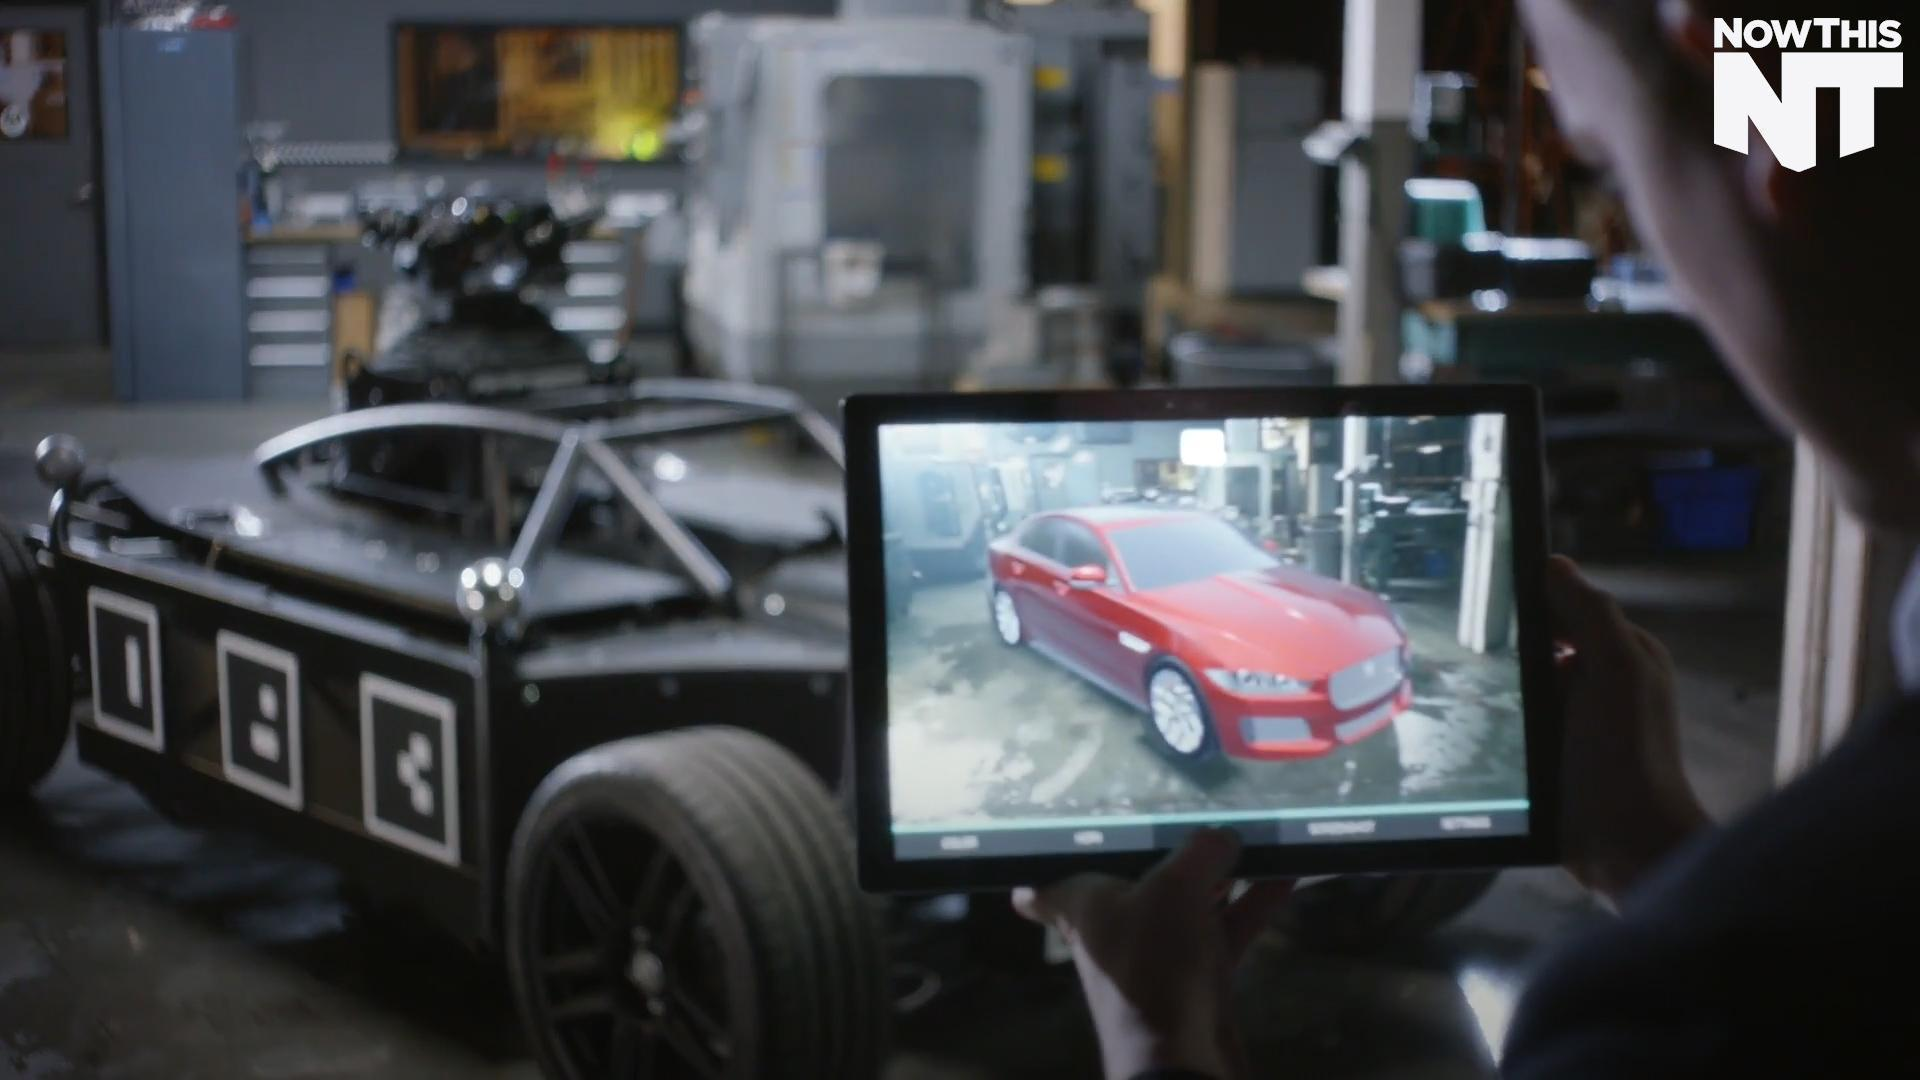 This Rig Will Revolutionize Automotive Focused Post Production